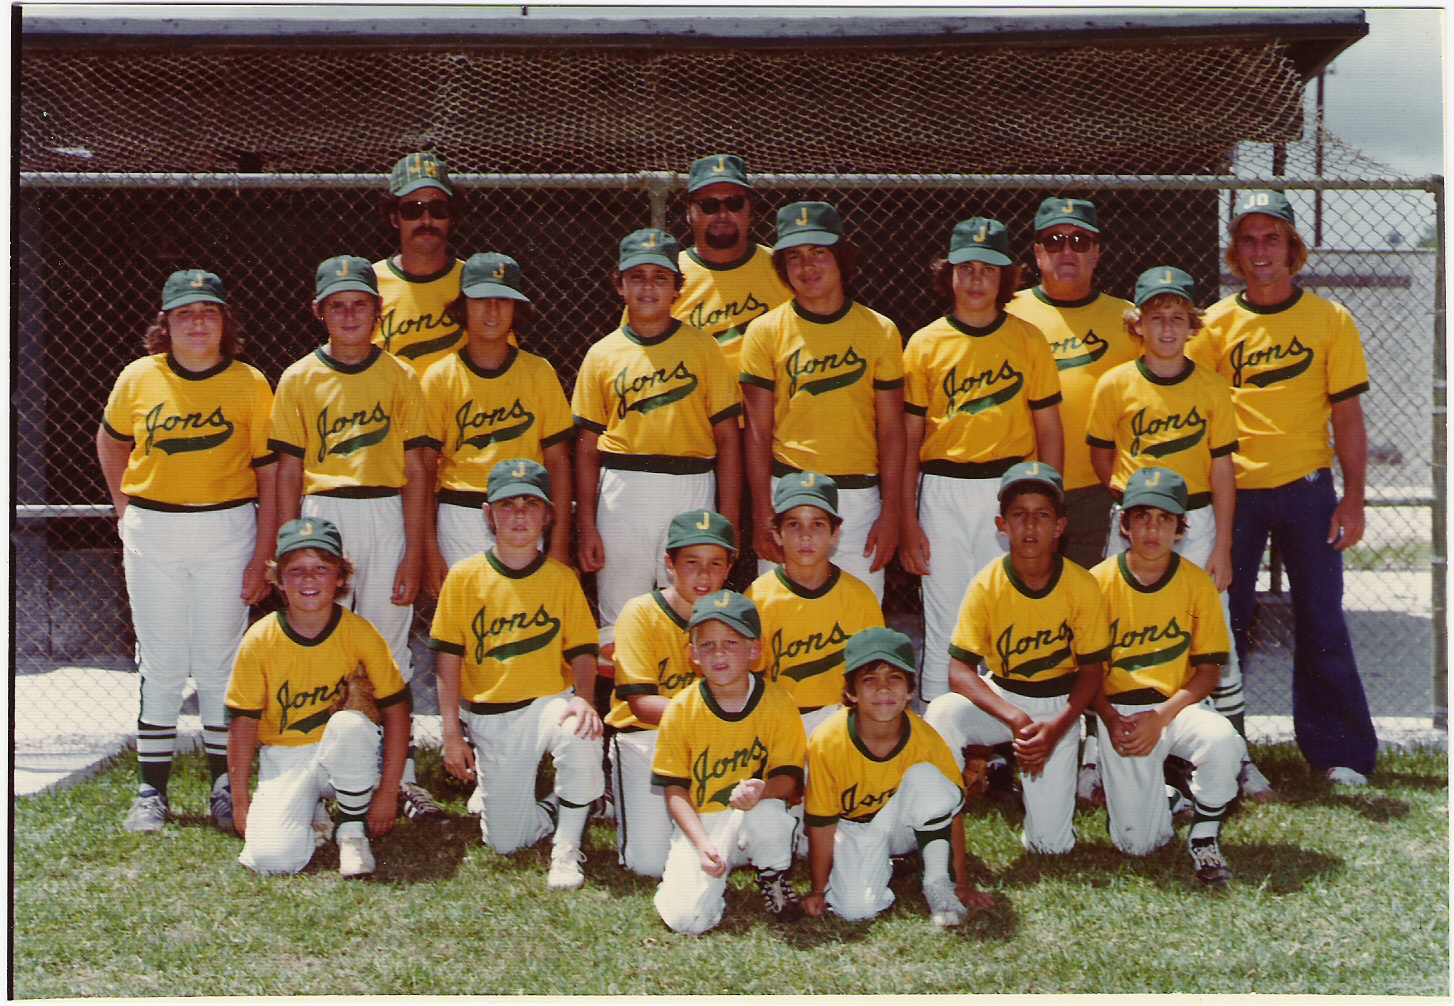 1974 L TO R Back: TONY MENDEZ, RAY REVAK, MR. JON, MARTY ARNOLD; 2ND ROW: BUBBA ROCHELLE, RAY REVAK JR., BUBBA SANTANA, JULIO GOMEZ, STEVE OREPEZA, RANDY ROCHELLE, TIMMY RODRIQUEZ; 3RD ROW: ERIC SPRINGER, TINGLEY, UNKNOWN, DANNY FEBLES, ROBERT CARMONA, GUS QUETTO?, BAT BOYS; ALAN COLLINS, FEBLES